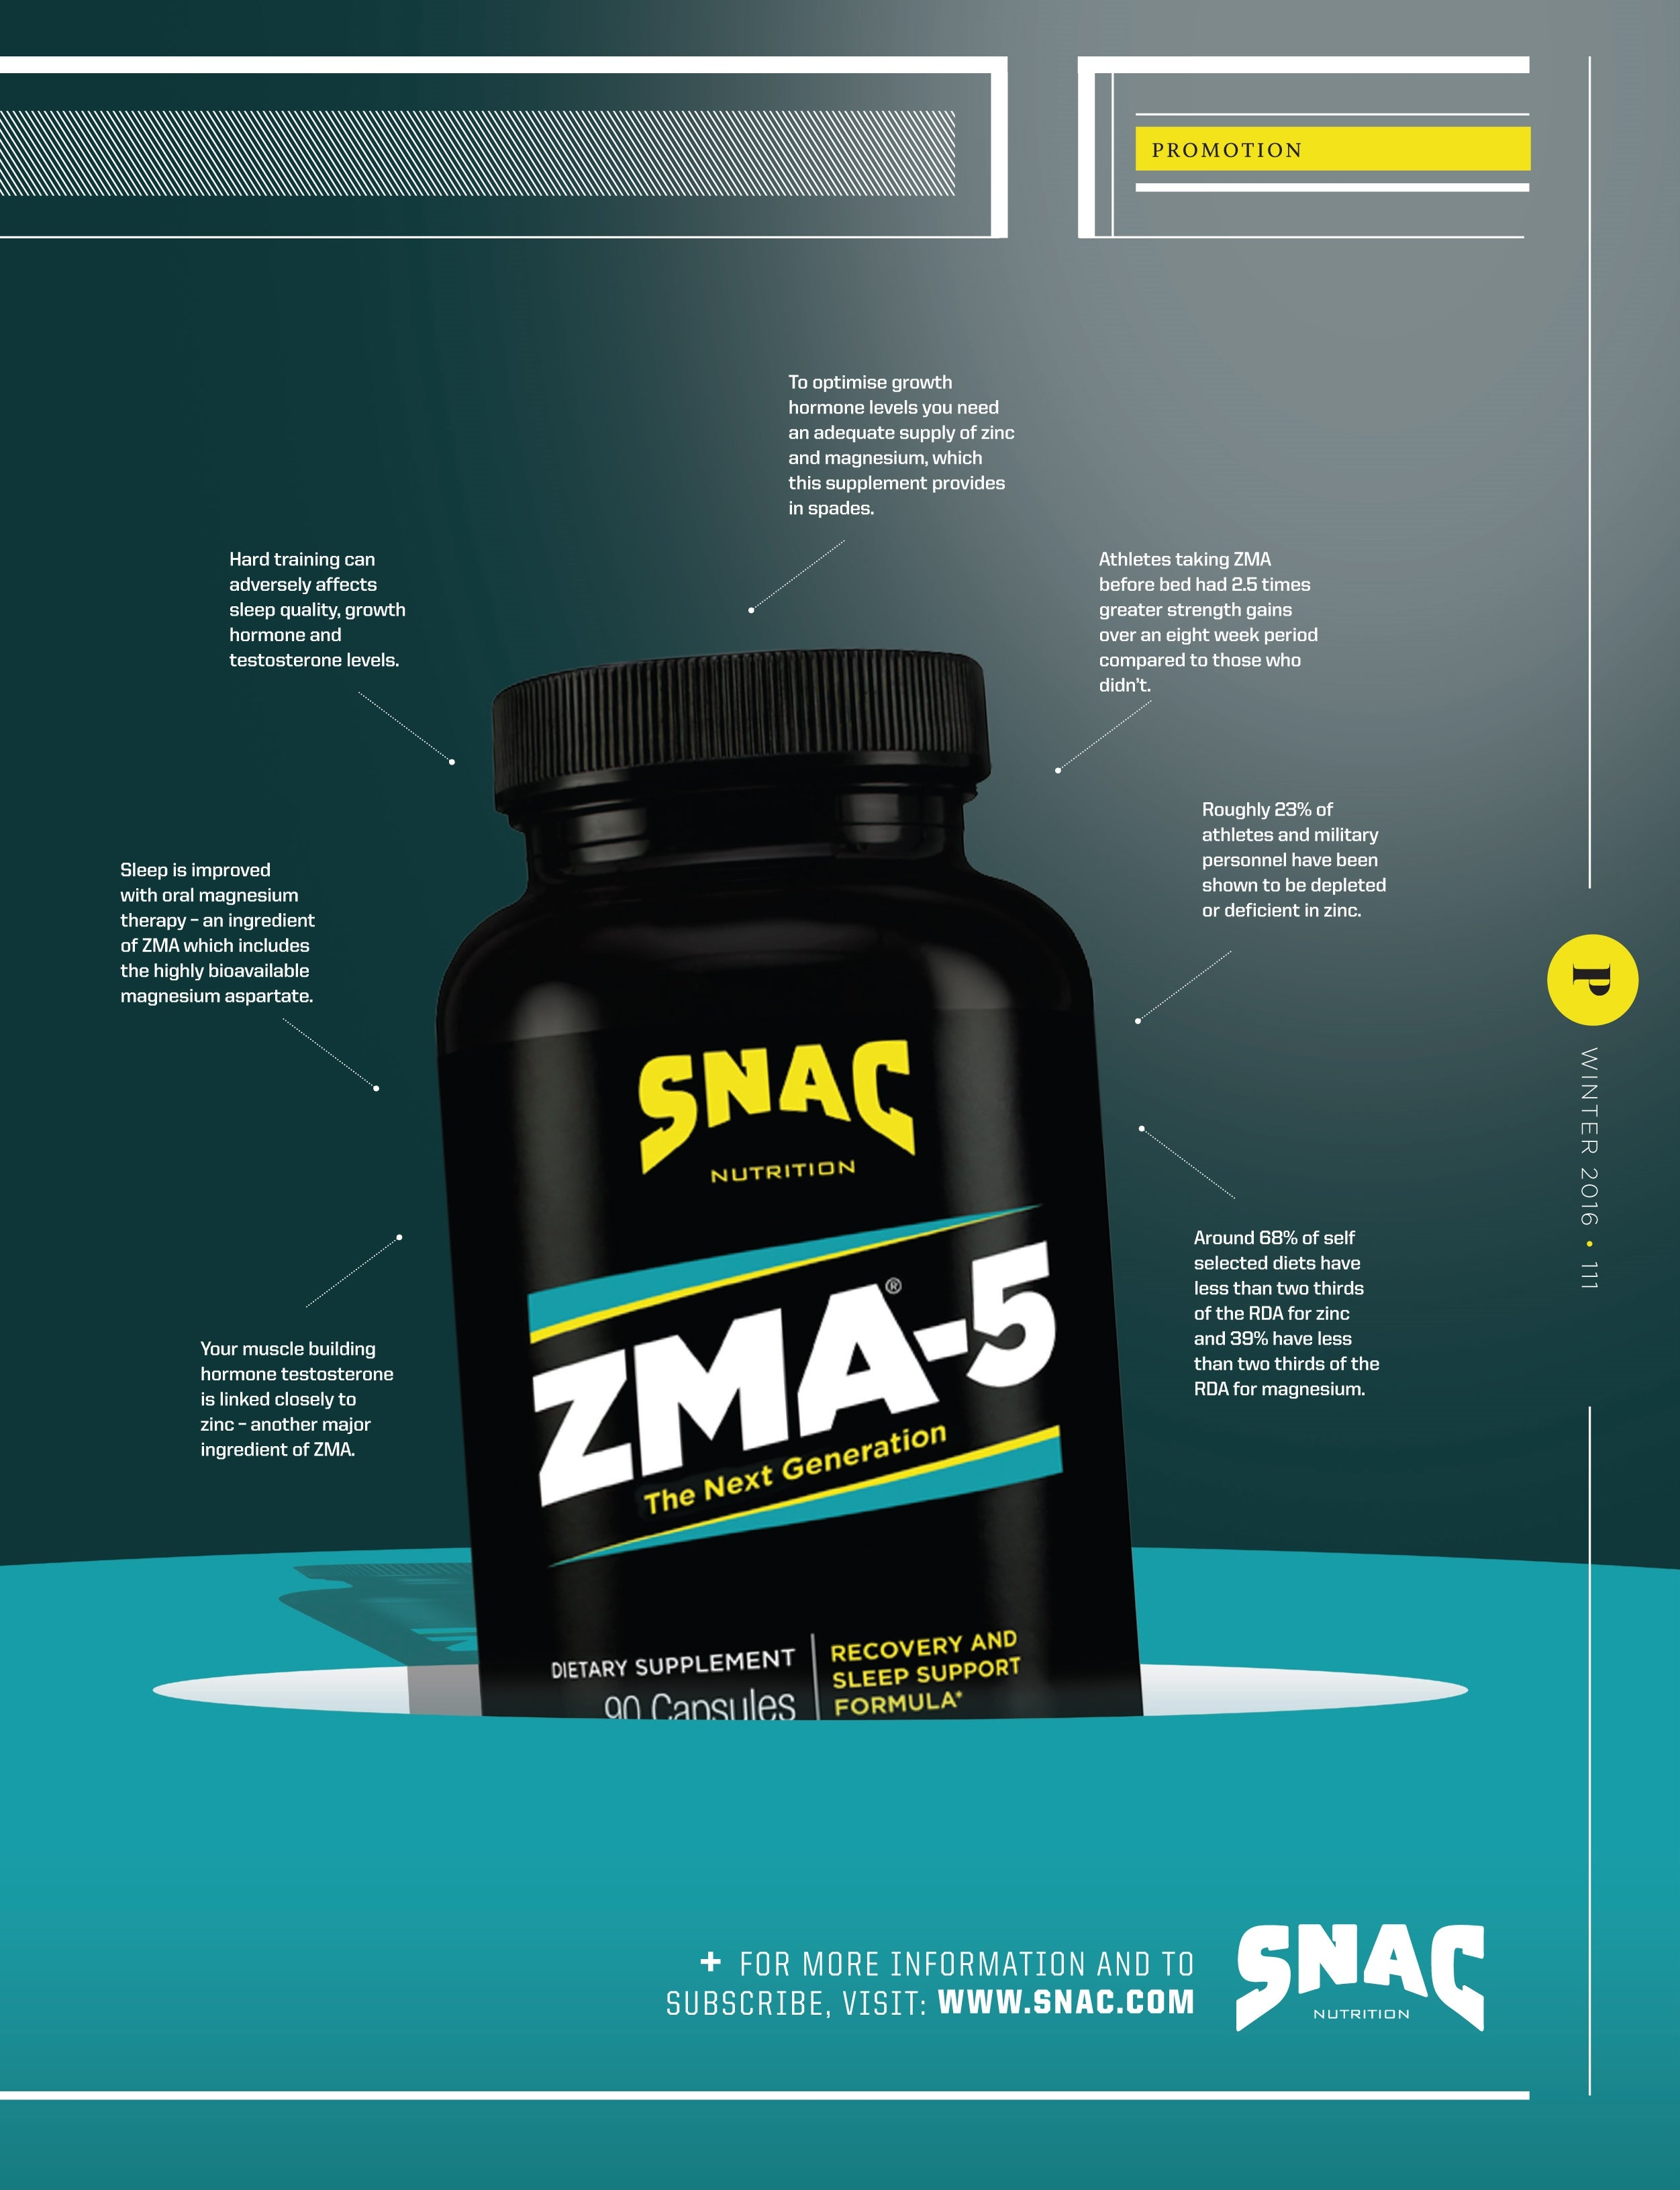 SNAC Train Article: Recover Stronger